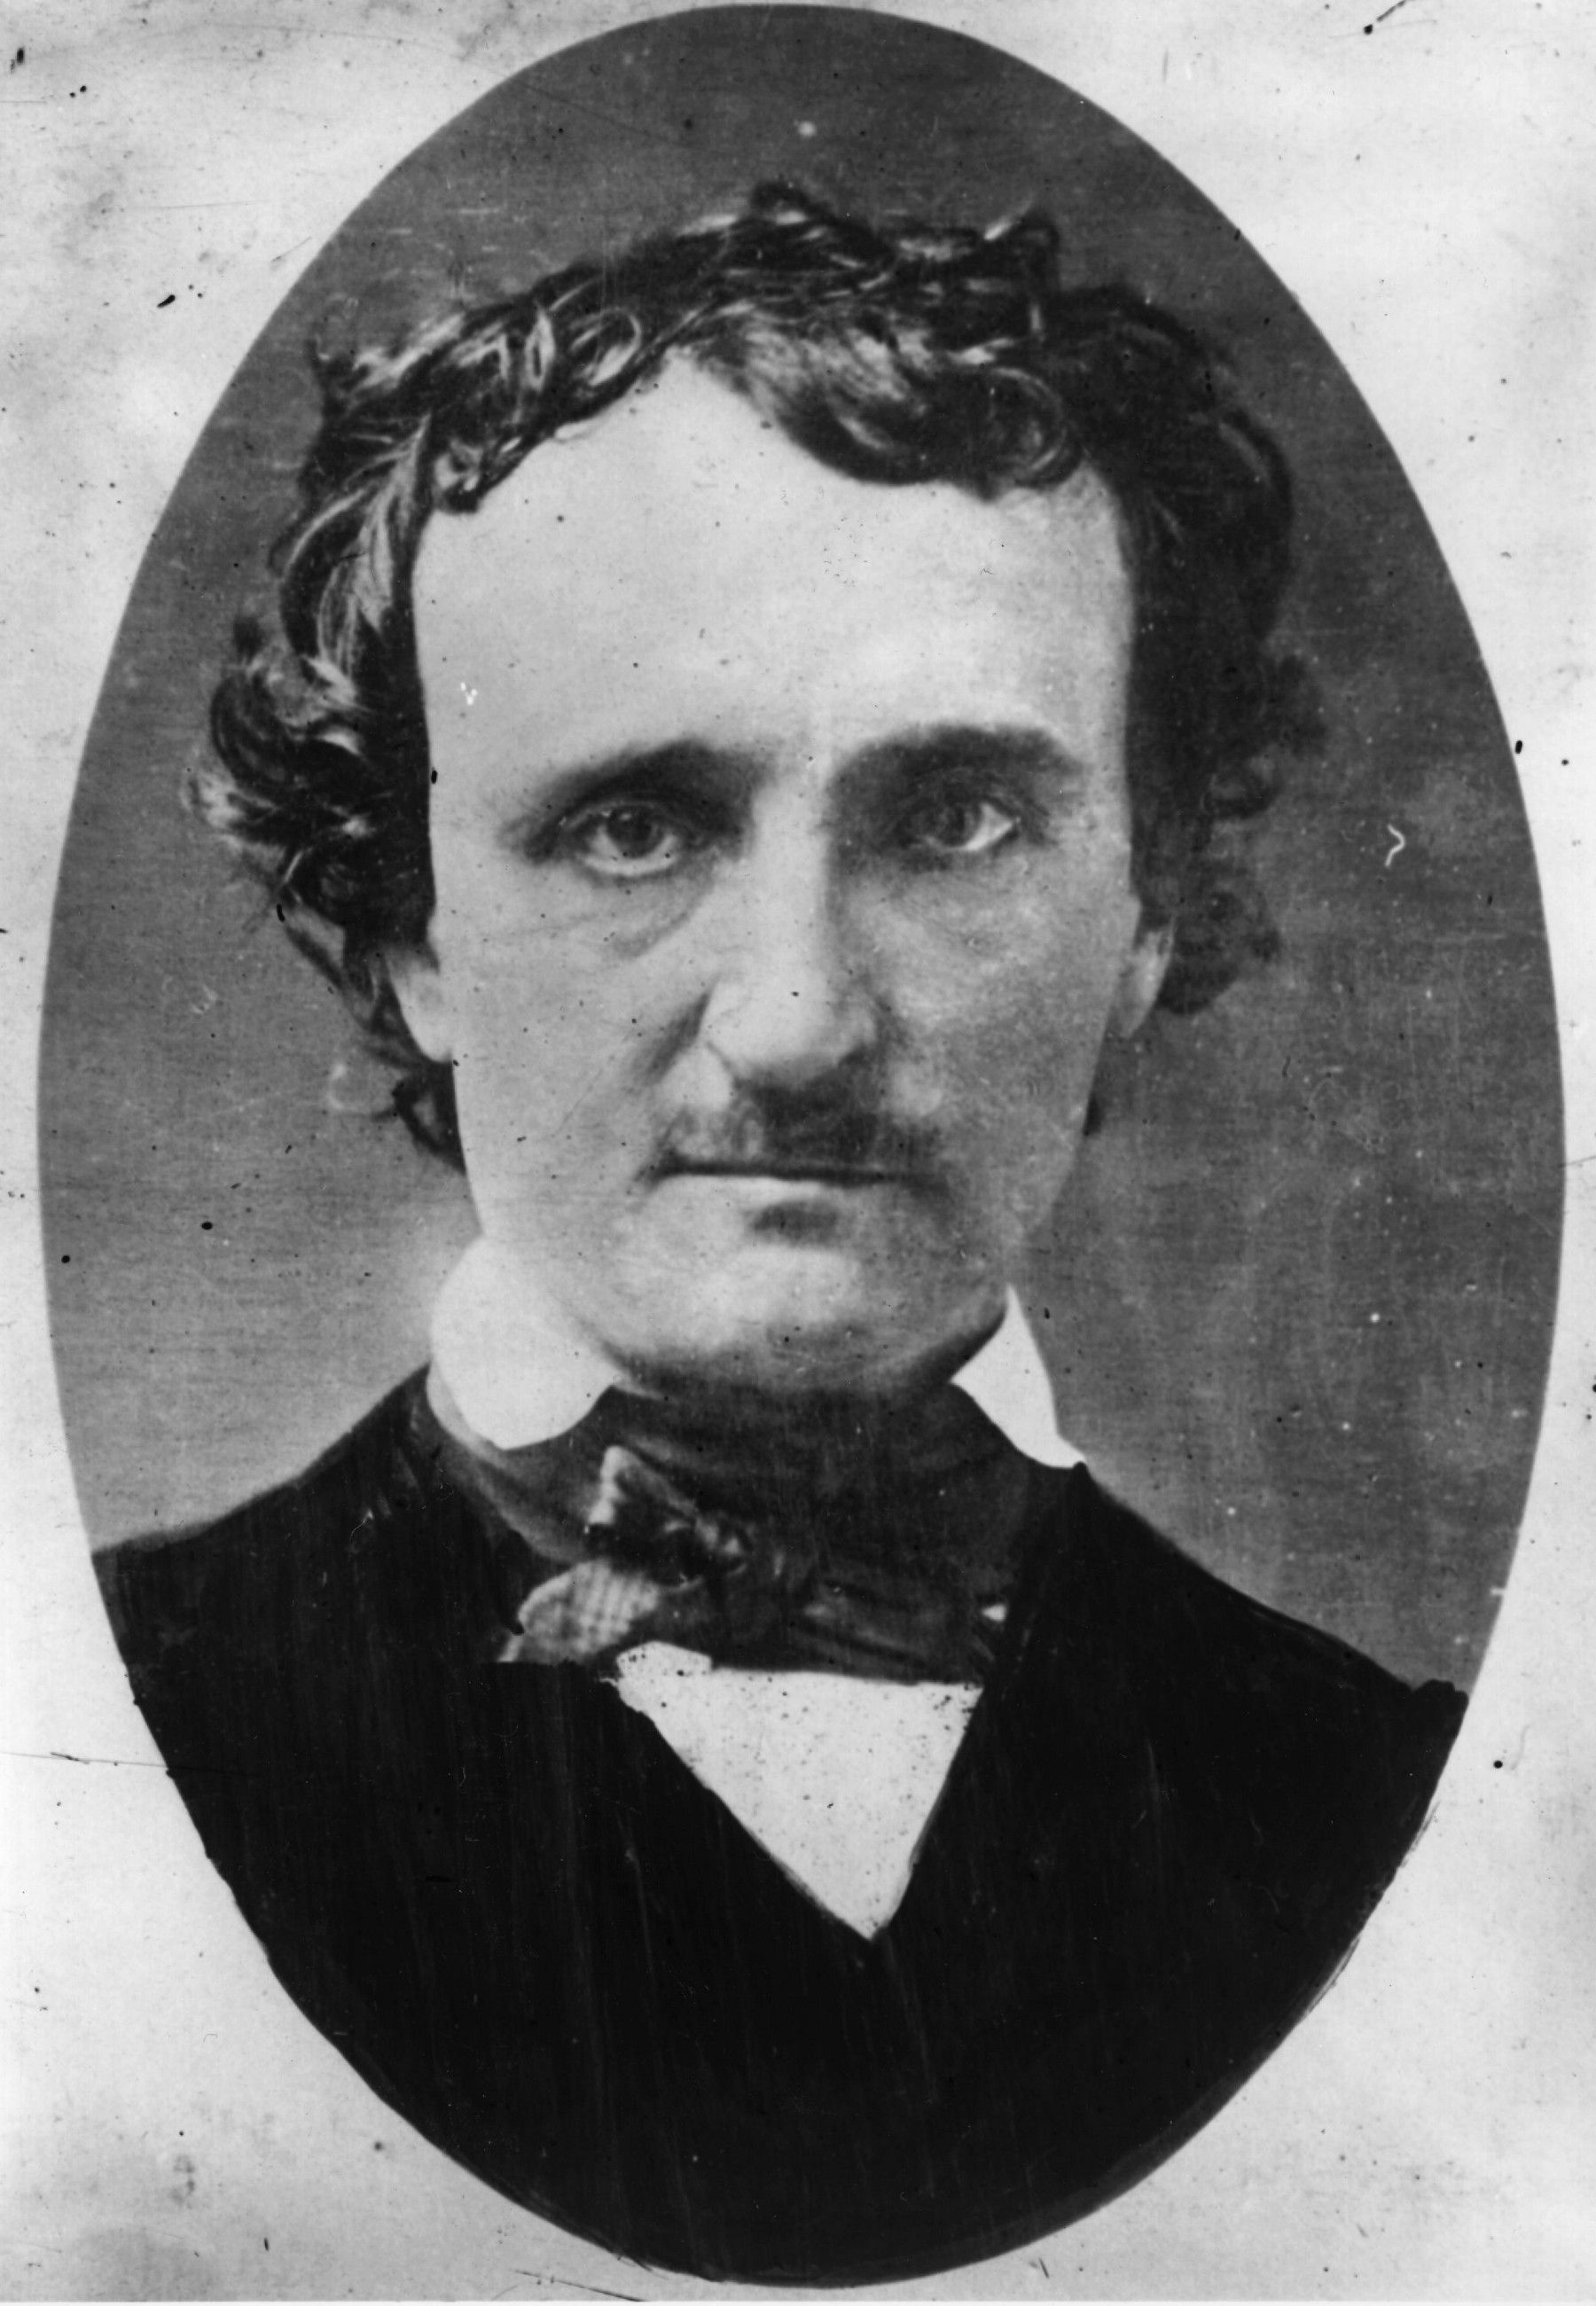 Edgar Allen Poe, R.I.P. October 7, 2016. Here's the evidence that's puzzled doctors for 150 years.